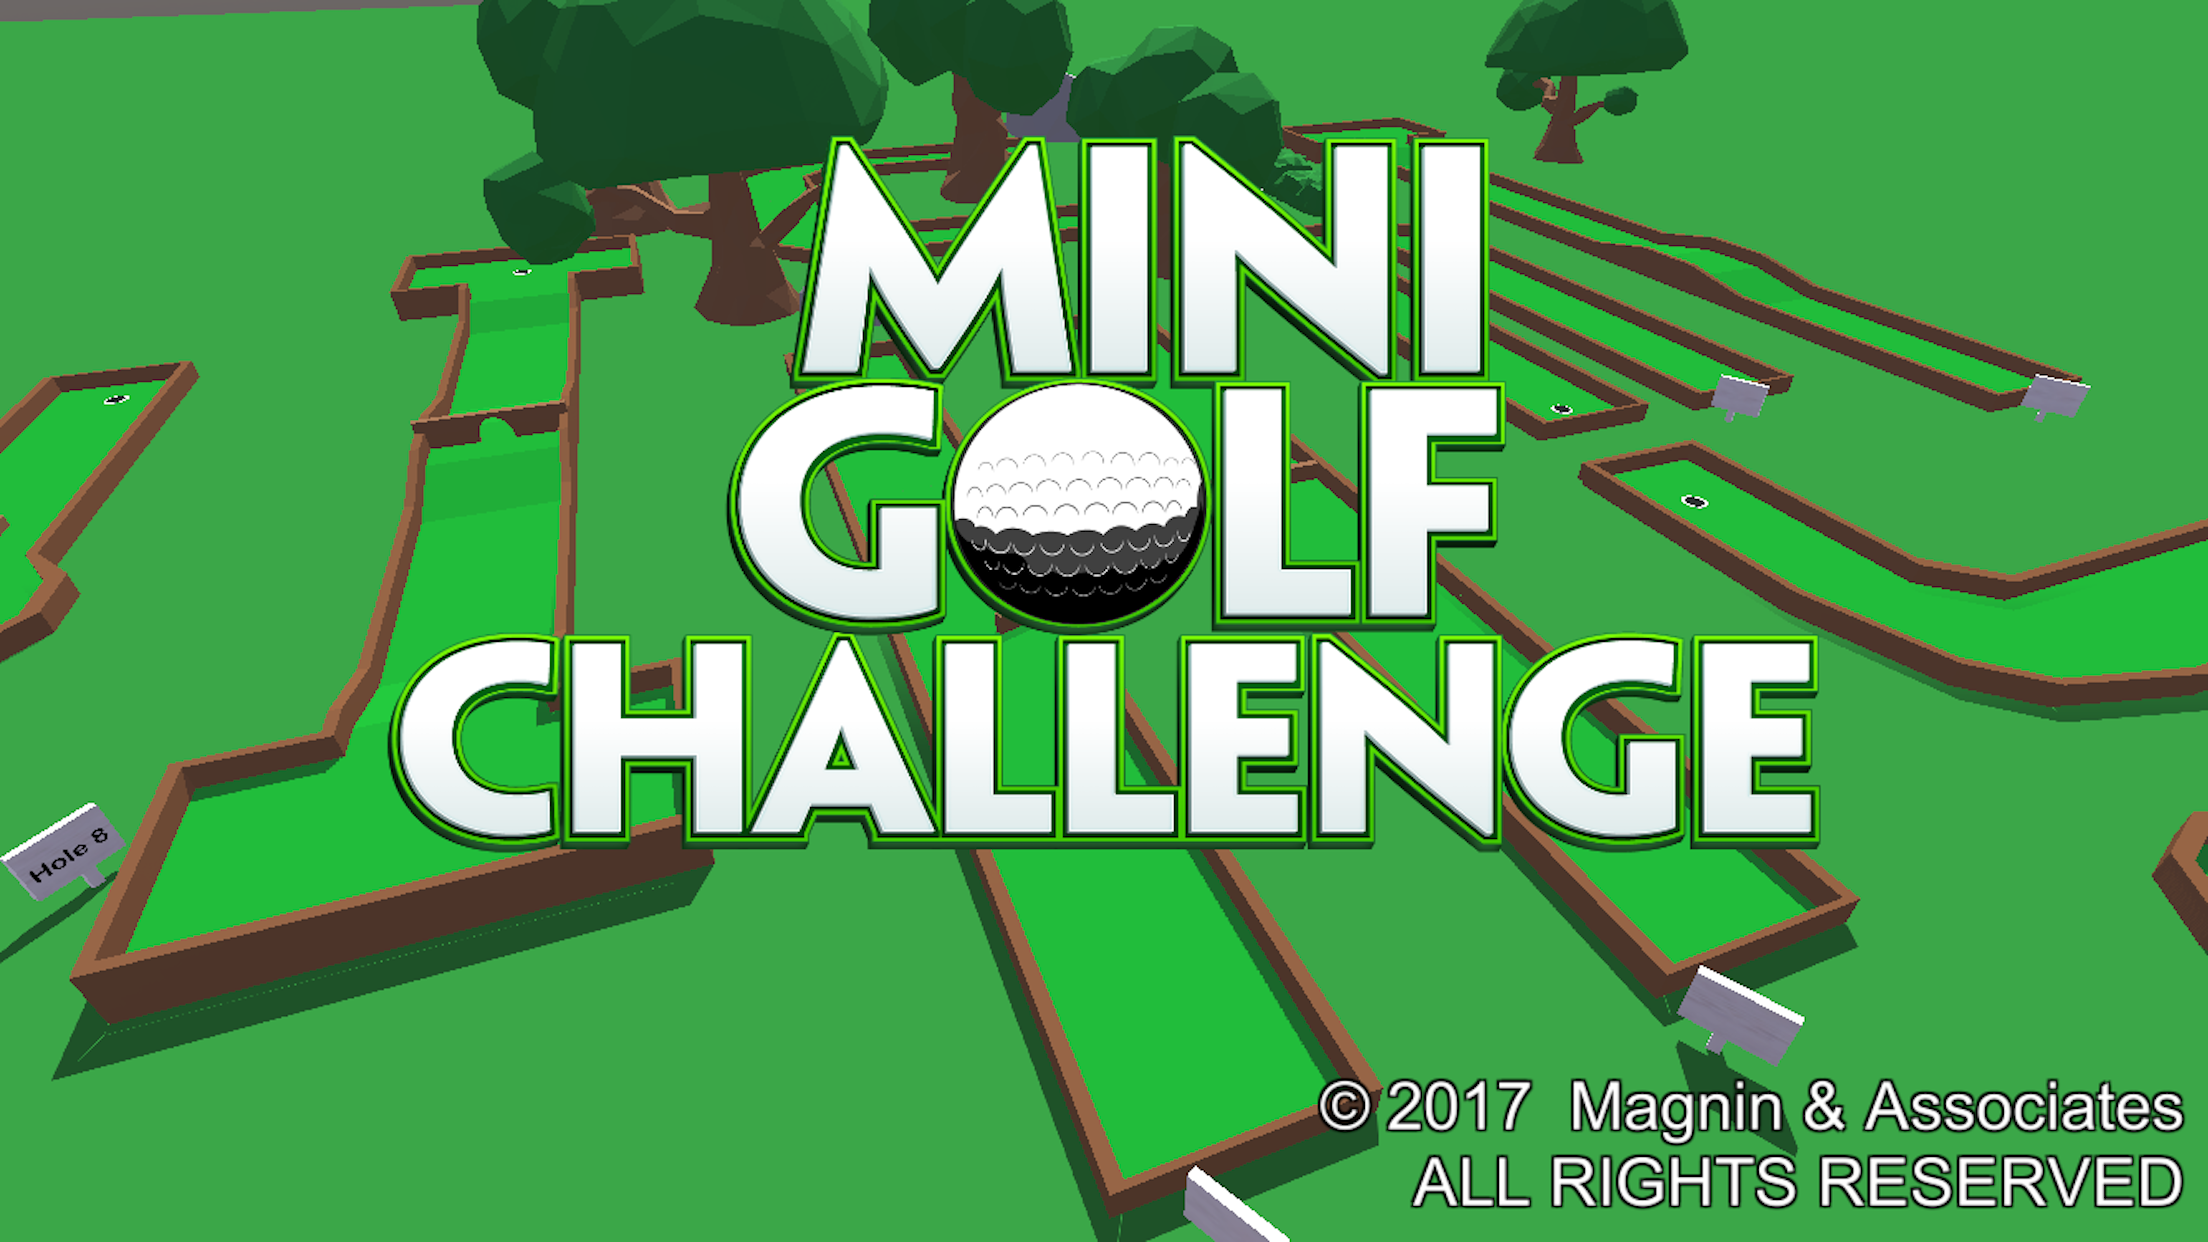 Mini Golf Challenge new game for iOS, Android, and Windows 10 Image